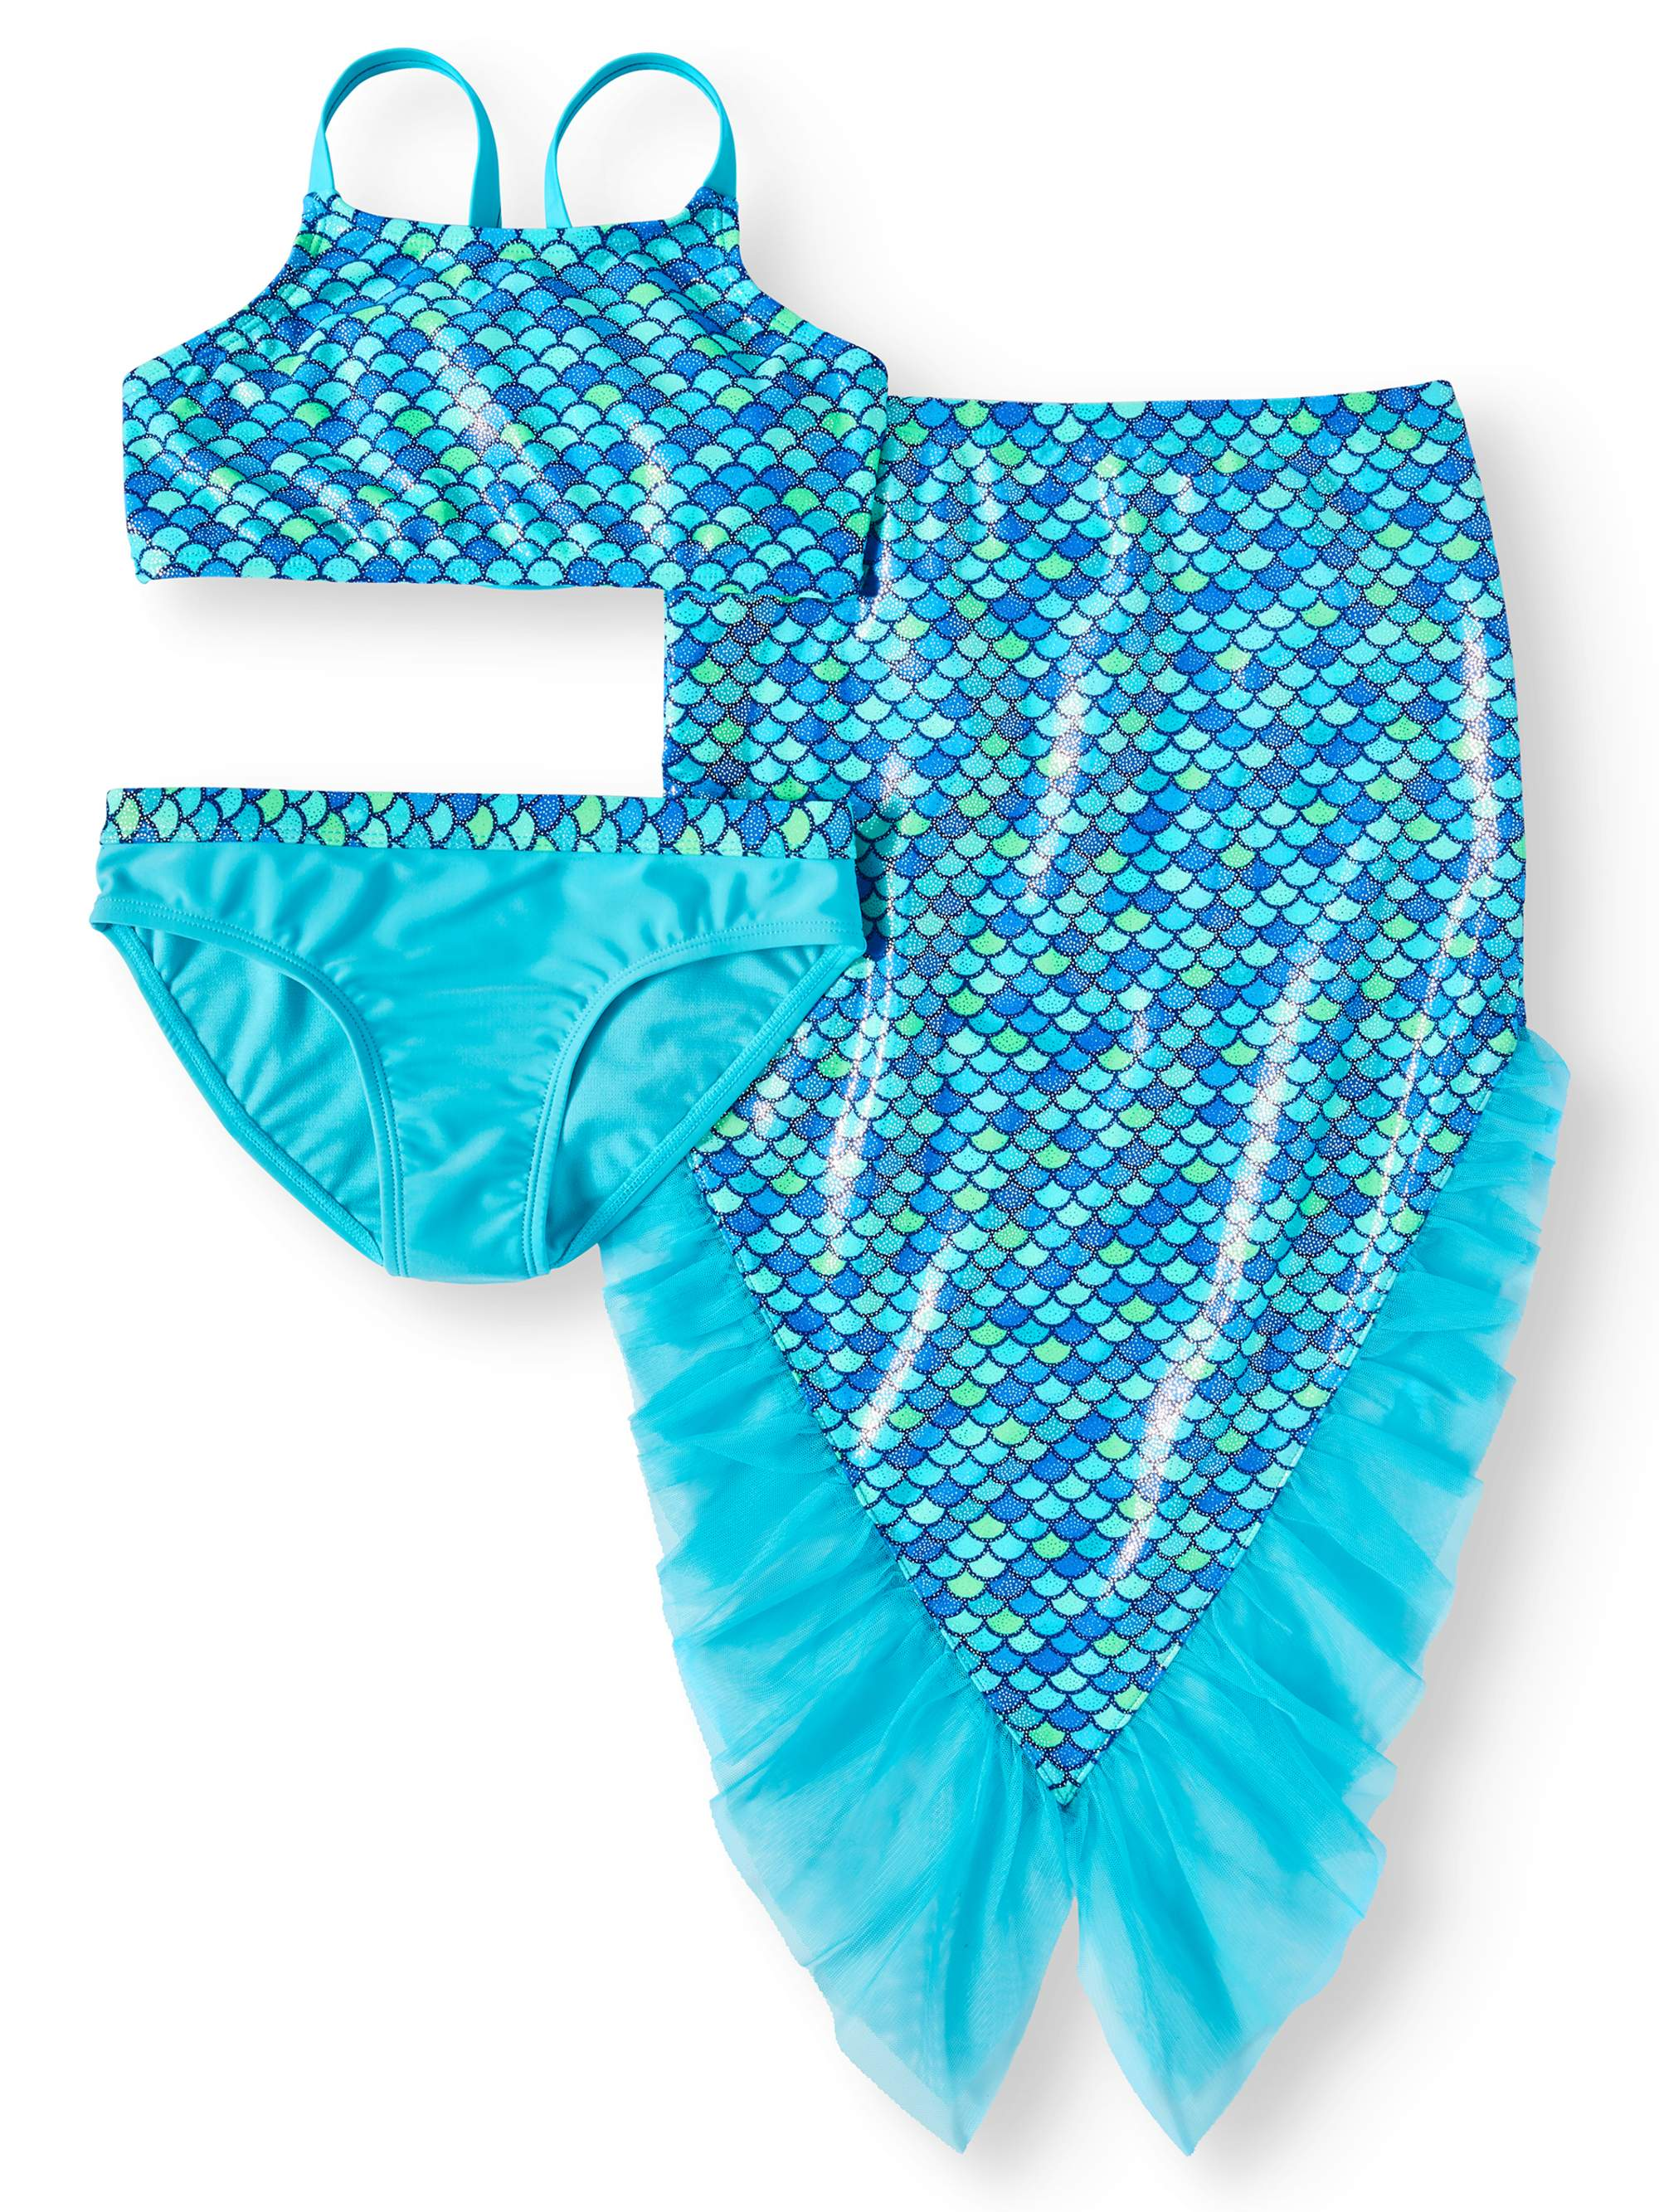 Mermaid Bikini Swimsuit and Skirt Coverup, 3-Piece Set (Little Girls & Big Girls)